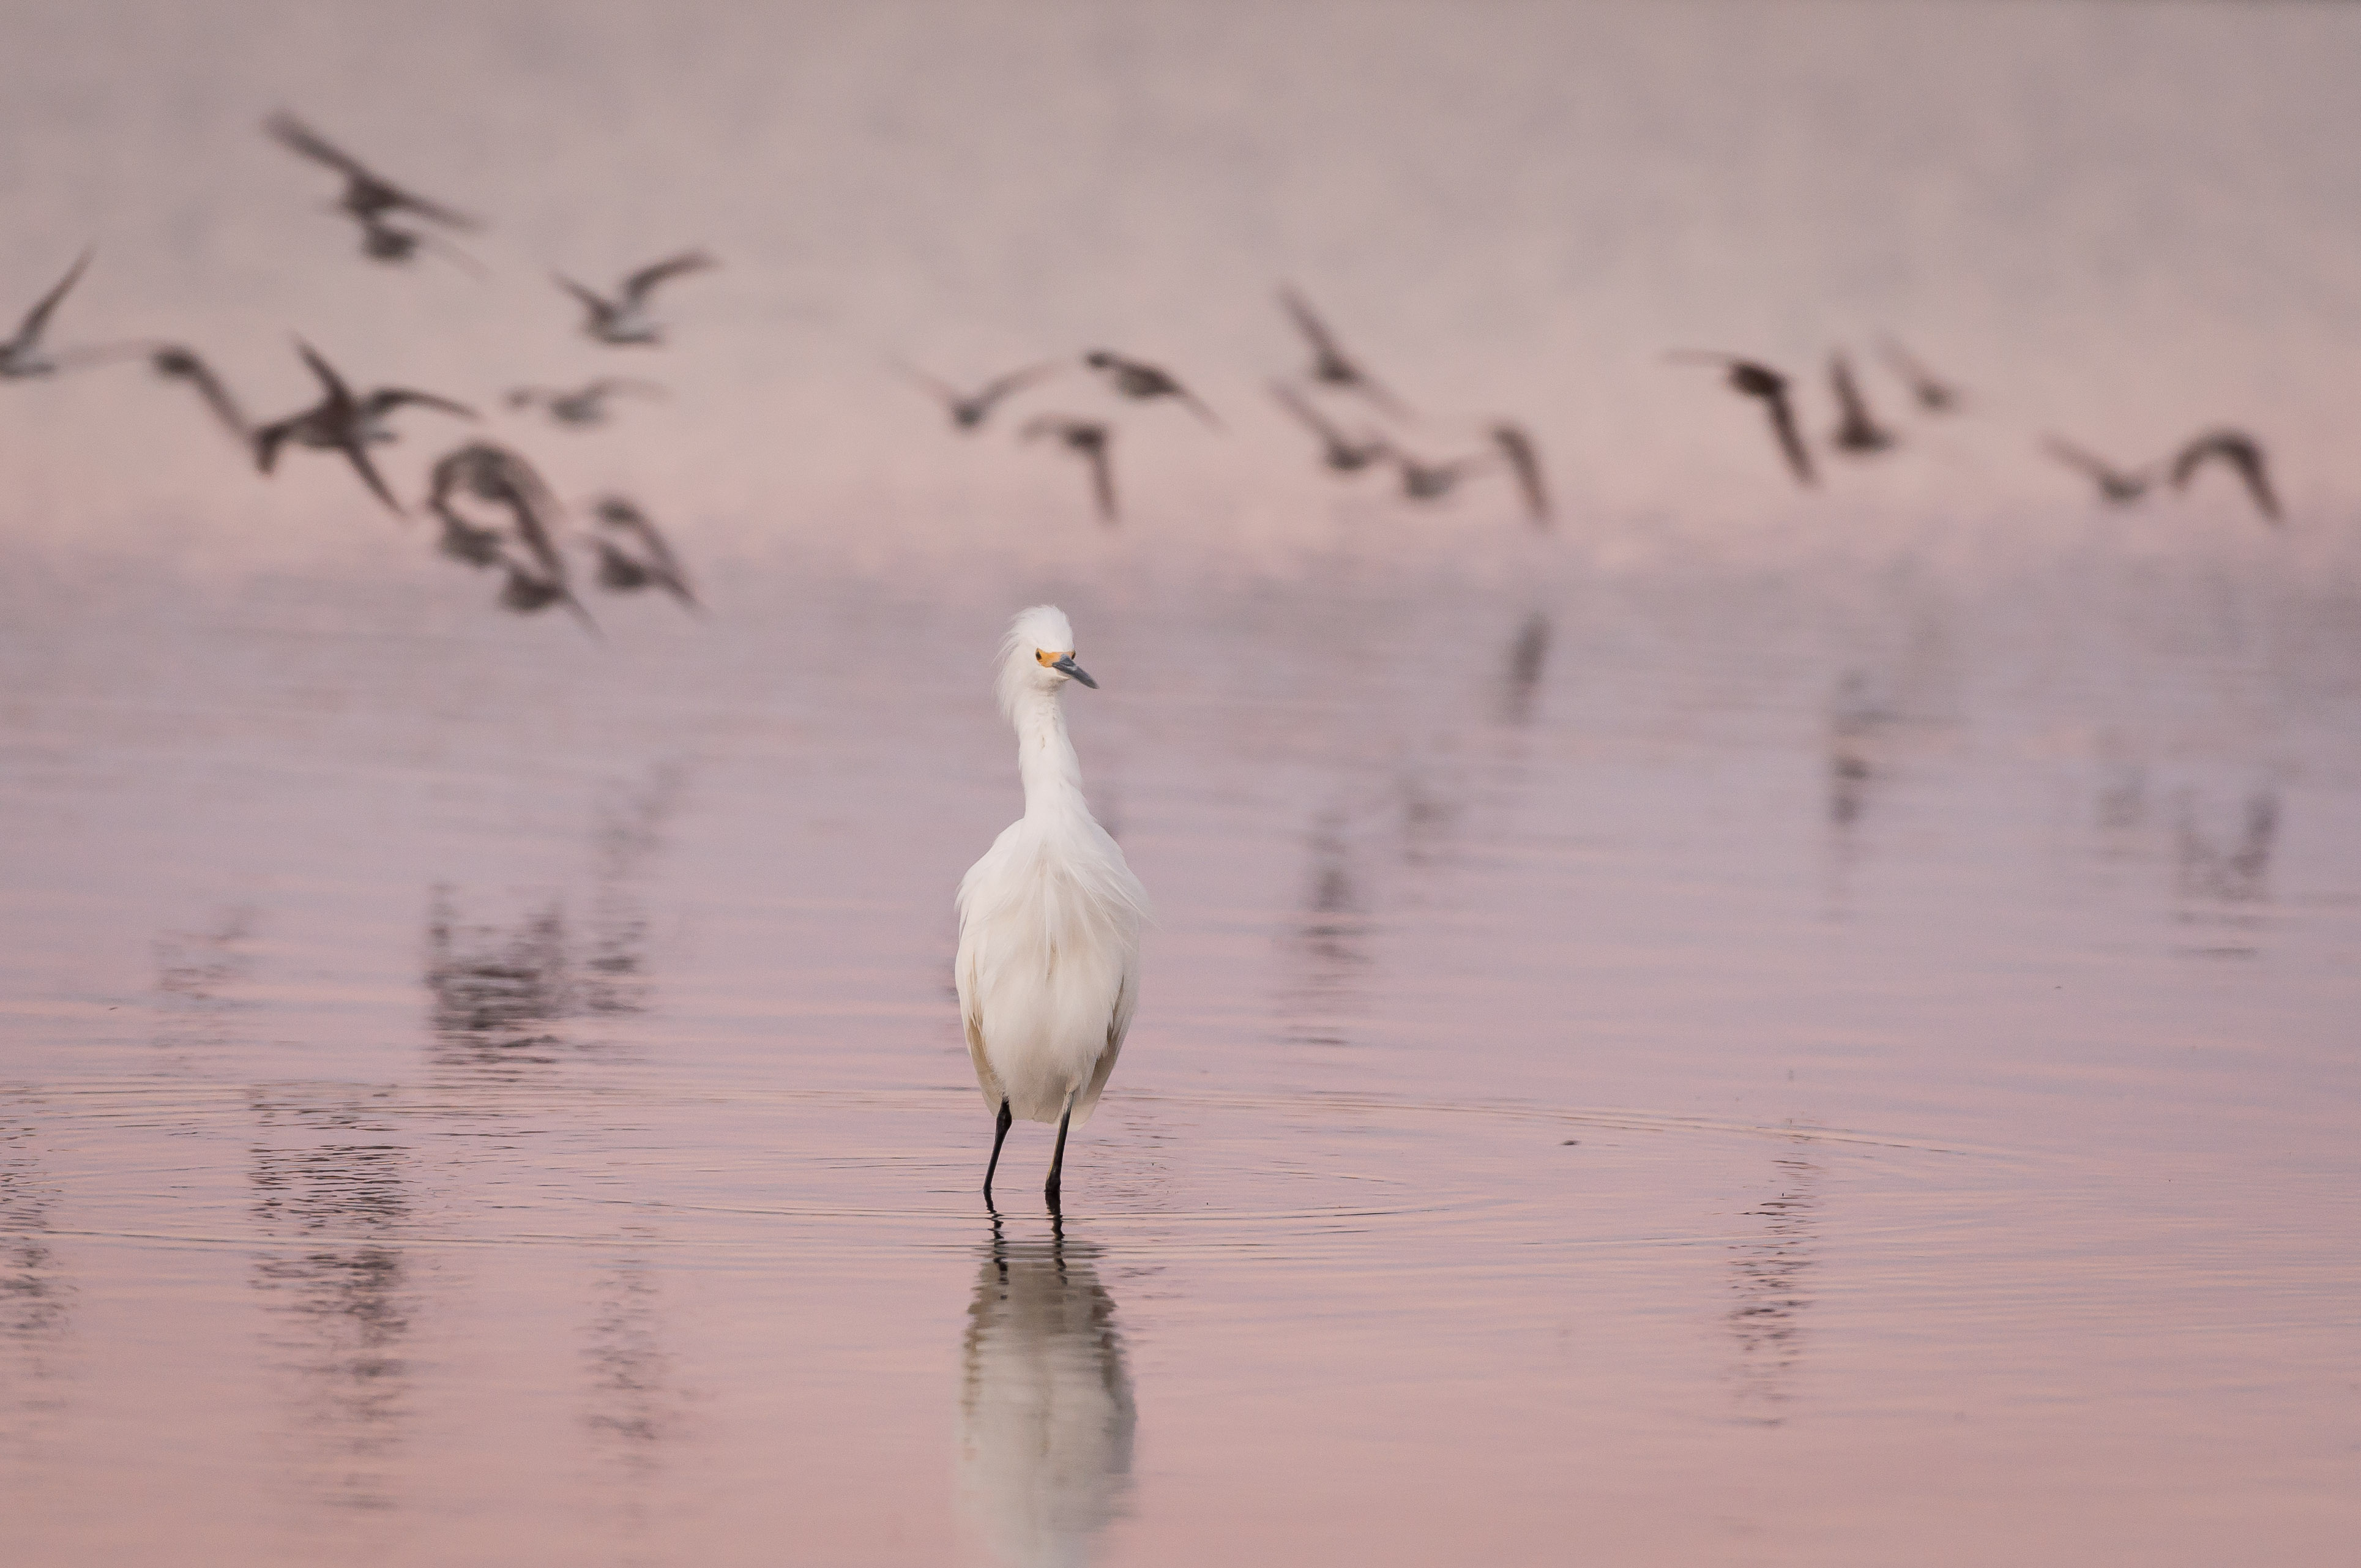 Snowy Egret wading with flying birds in background